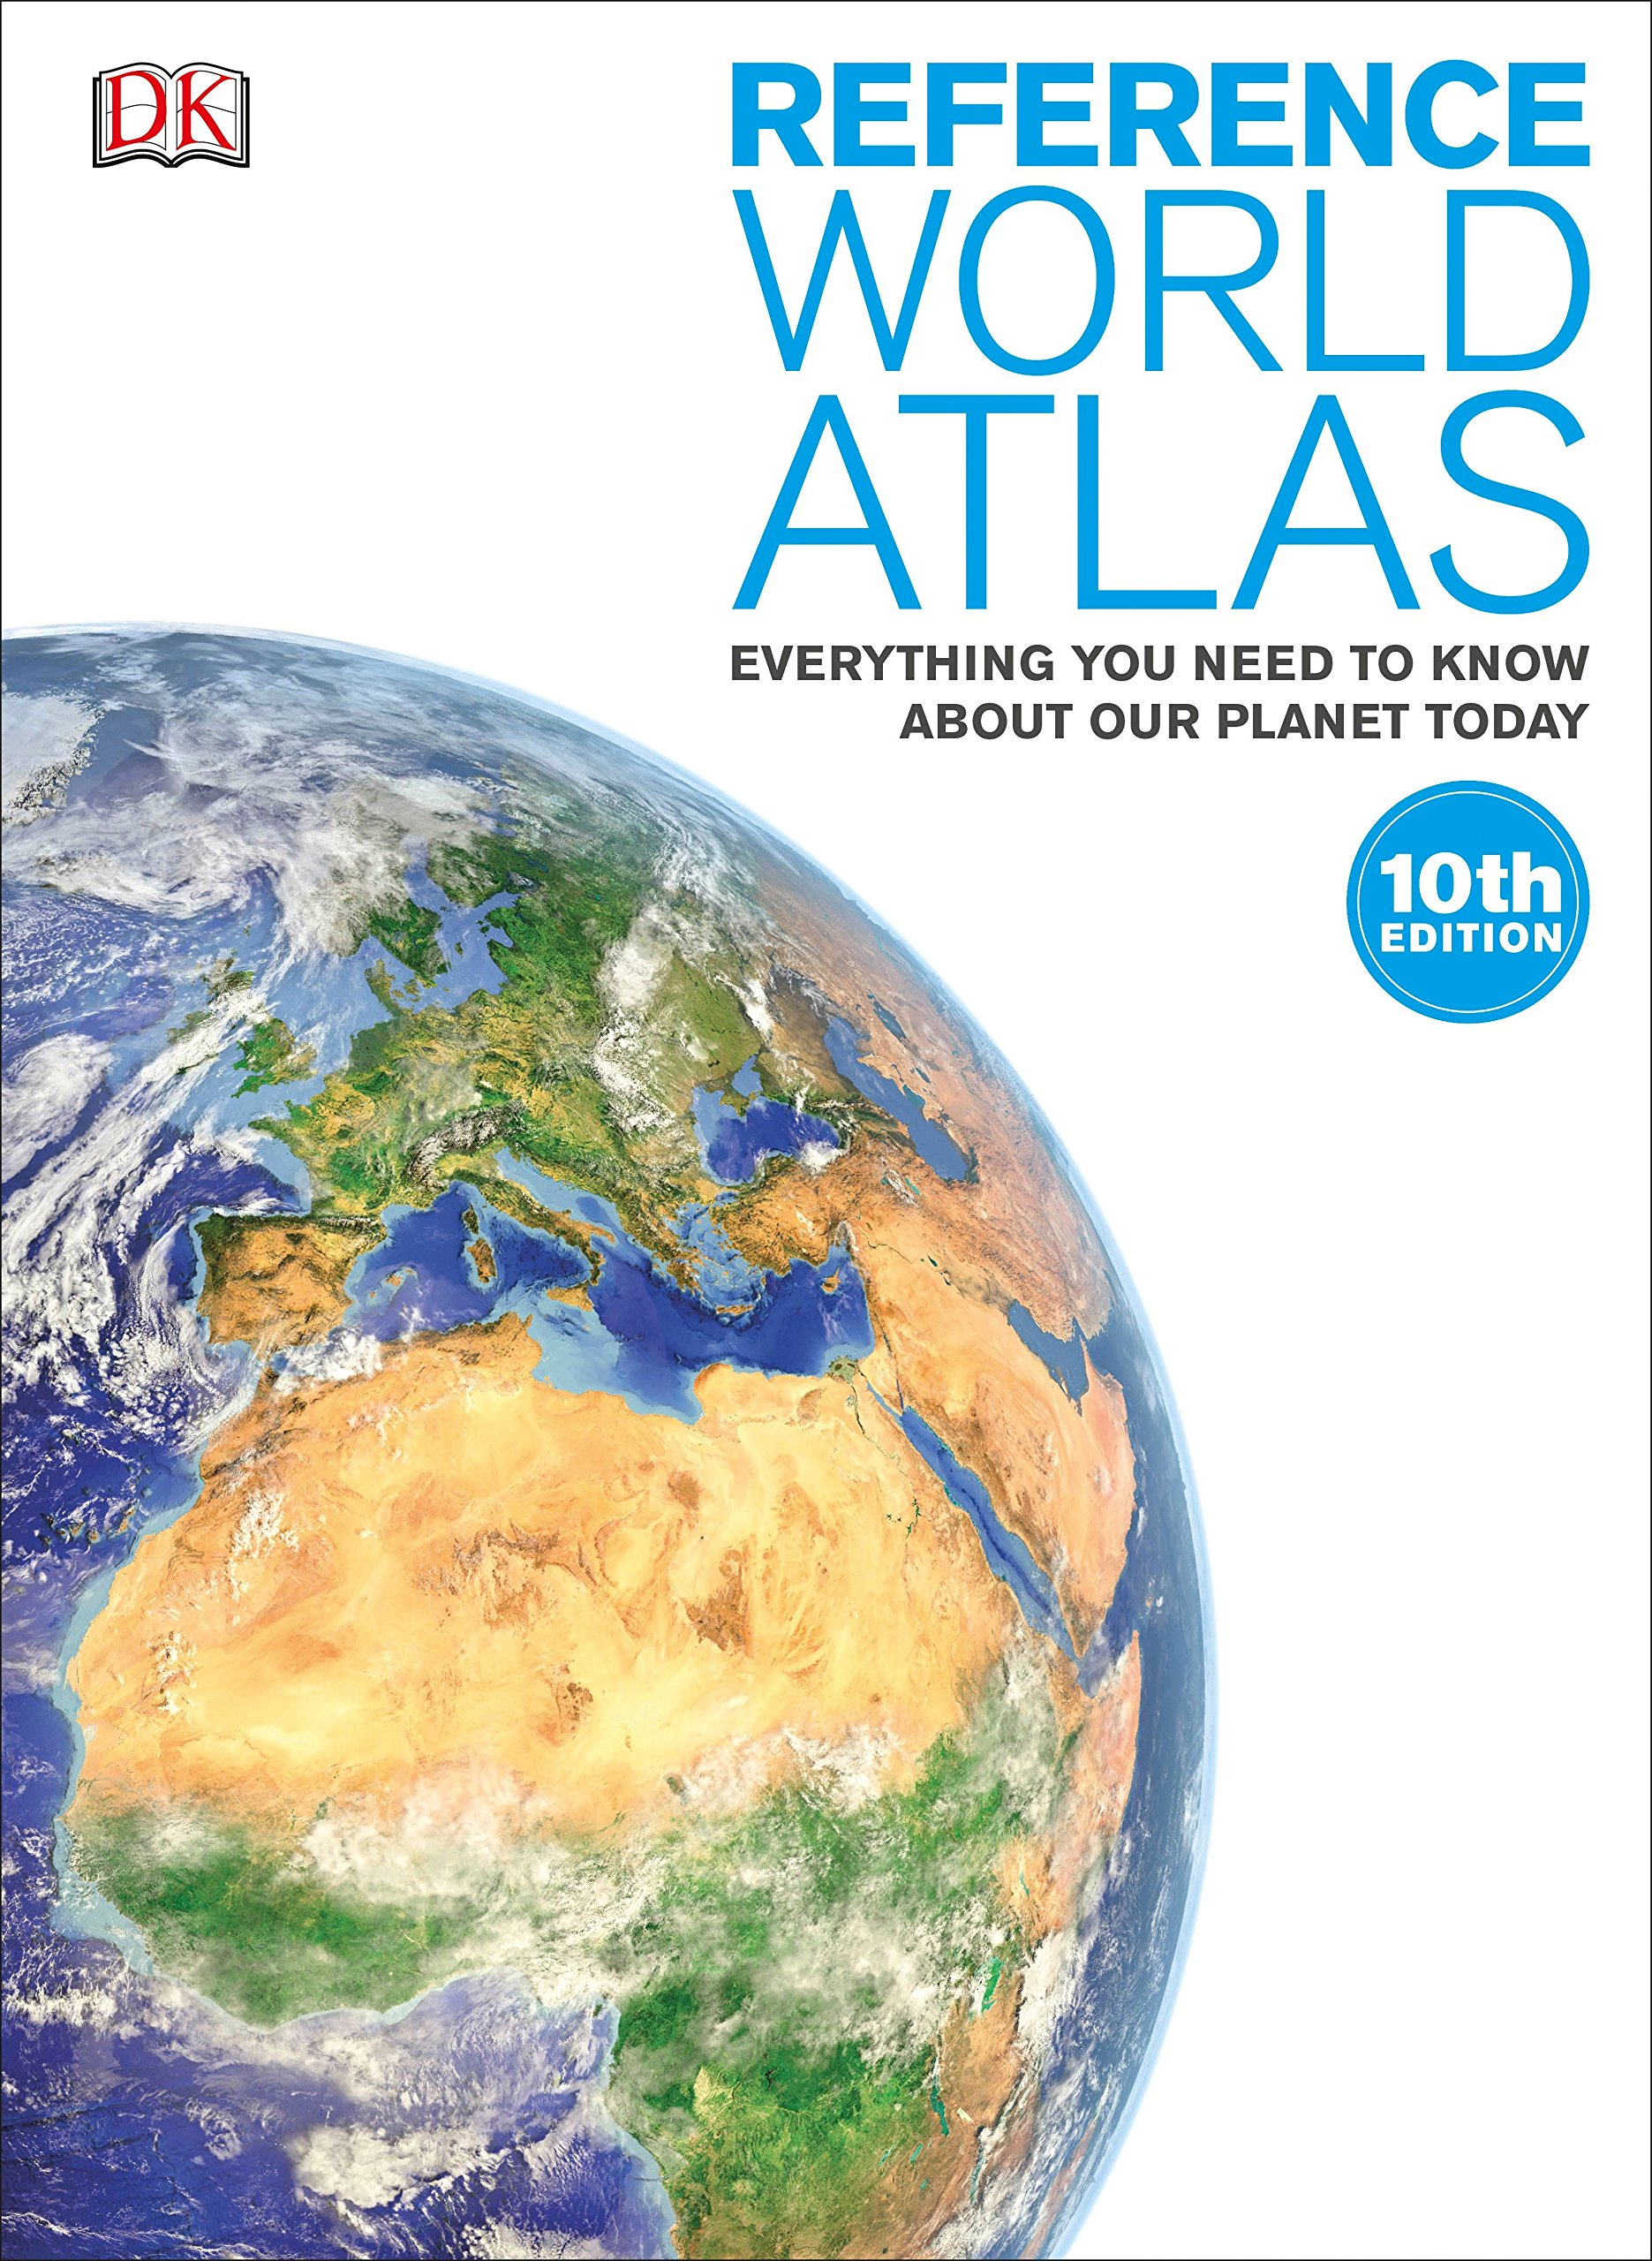 Reference World Atlas: Everything You Need to Know About Our Planet Today (Dk Reference World Atlas) by DK